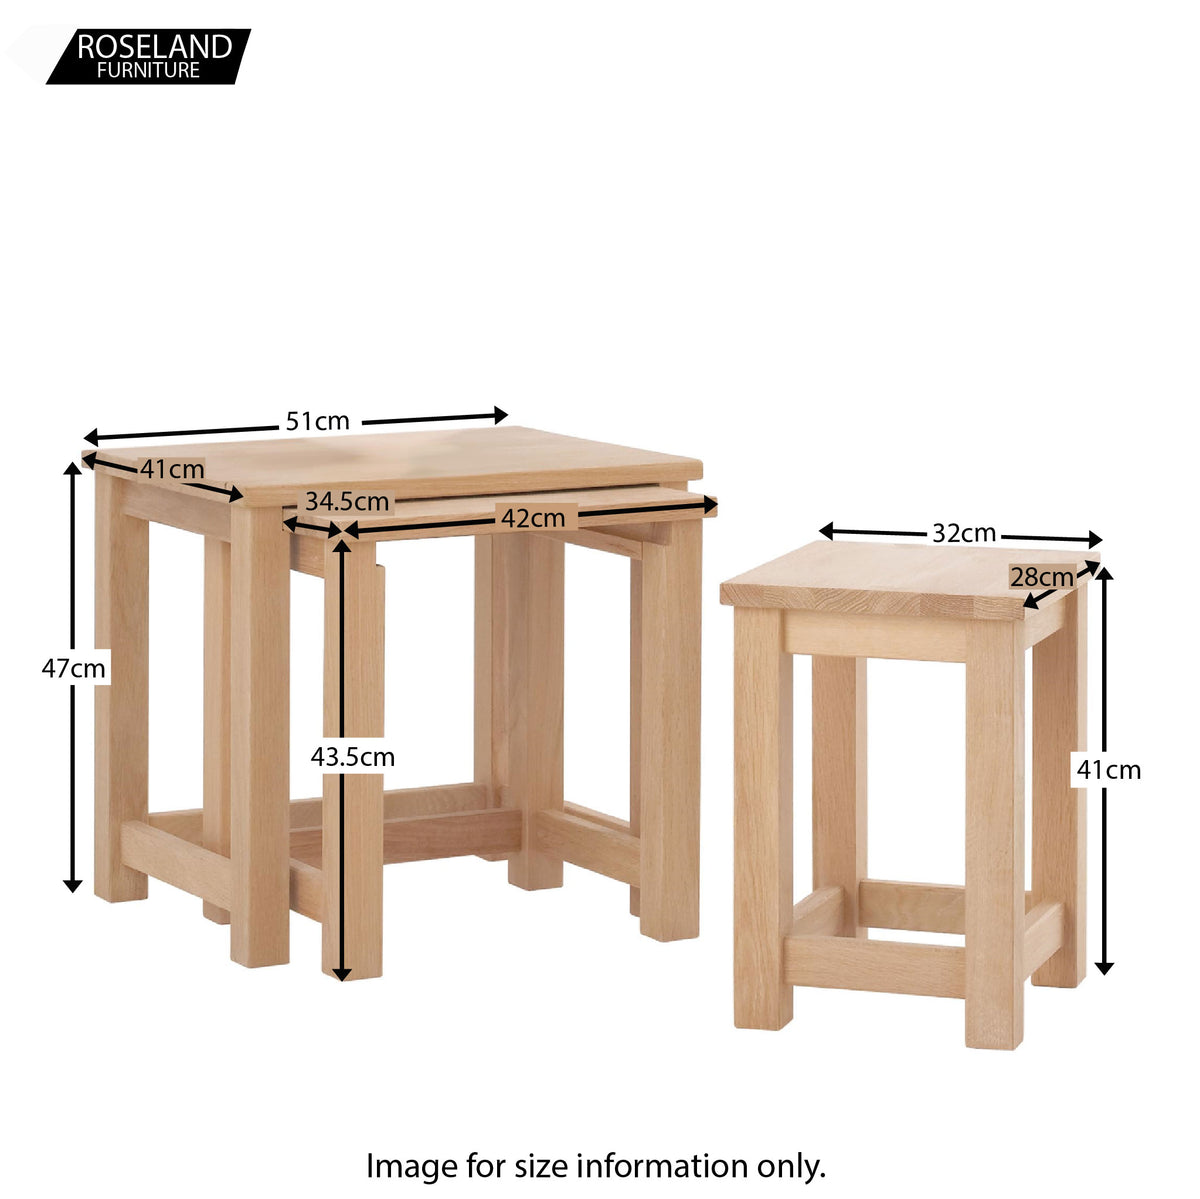 Dmensions - Falmouth Oak Nest of 3 Tables